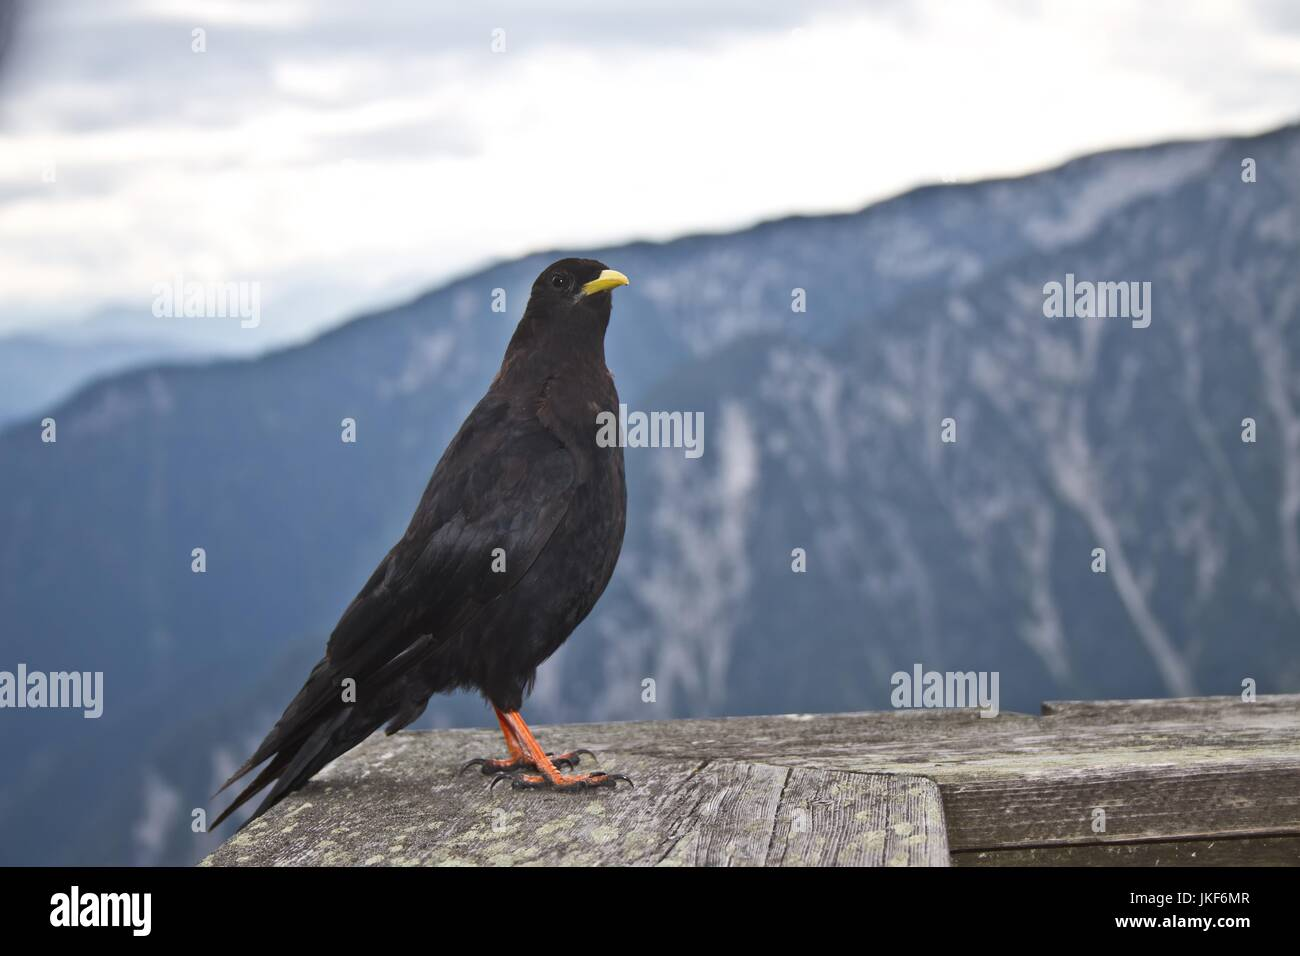 Oscine bird sitting on a handrail in a restaurant in the austrian alps in summer - Stock Image